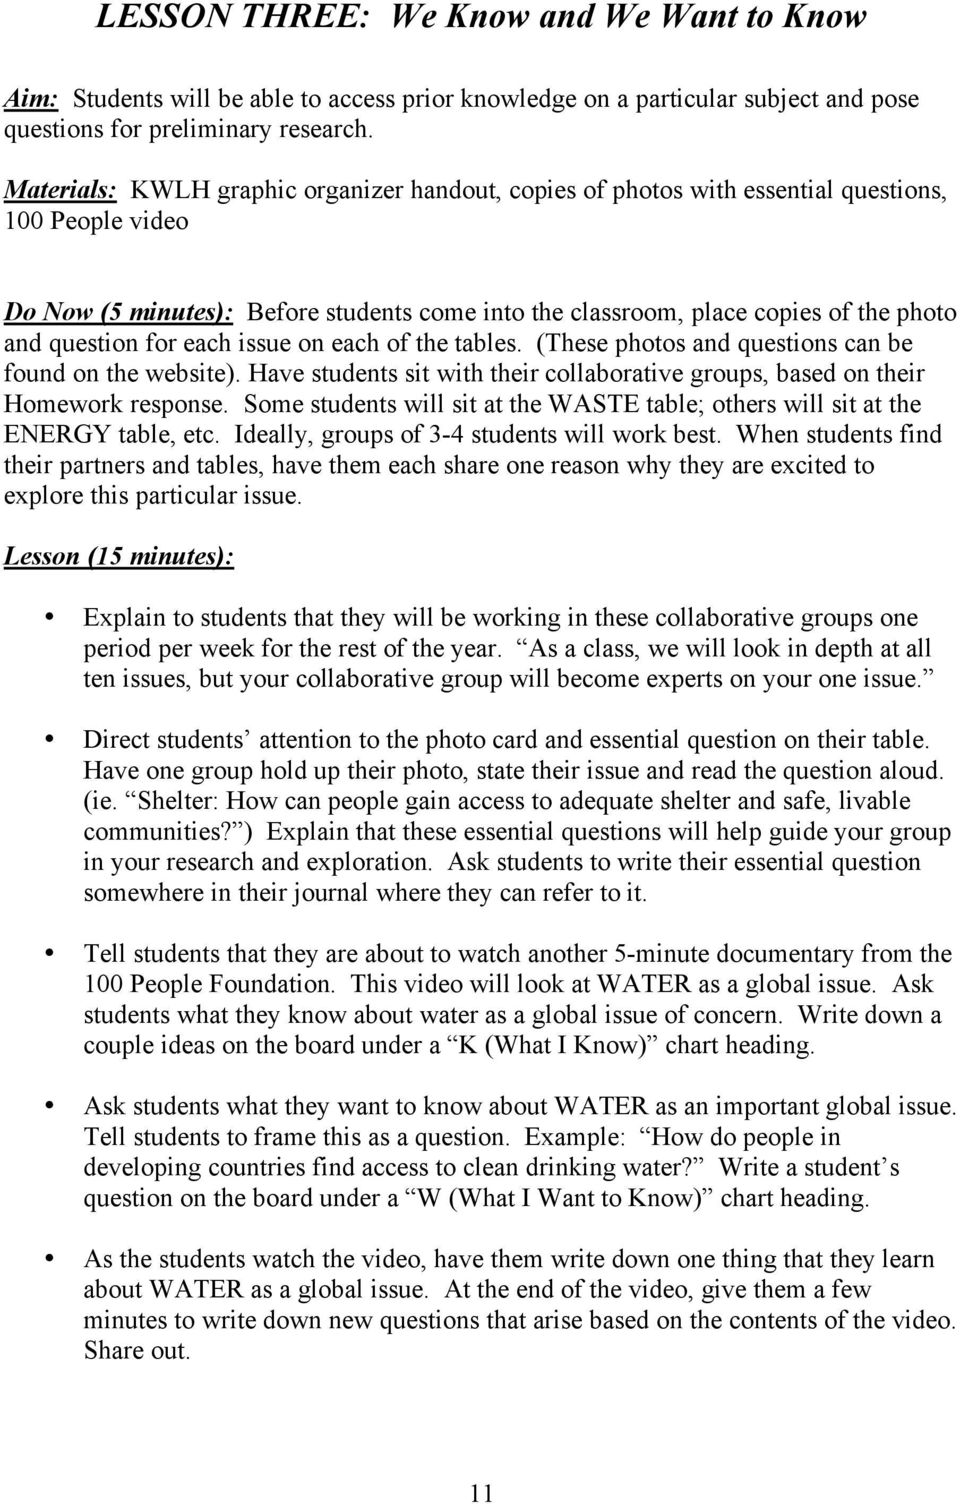 question for each issue on each of the tables. (These photos and questions can be found on the website). Have students sit with their collaborative groups, based on their Homework response.